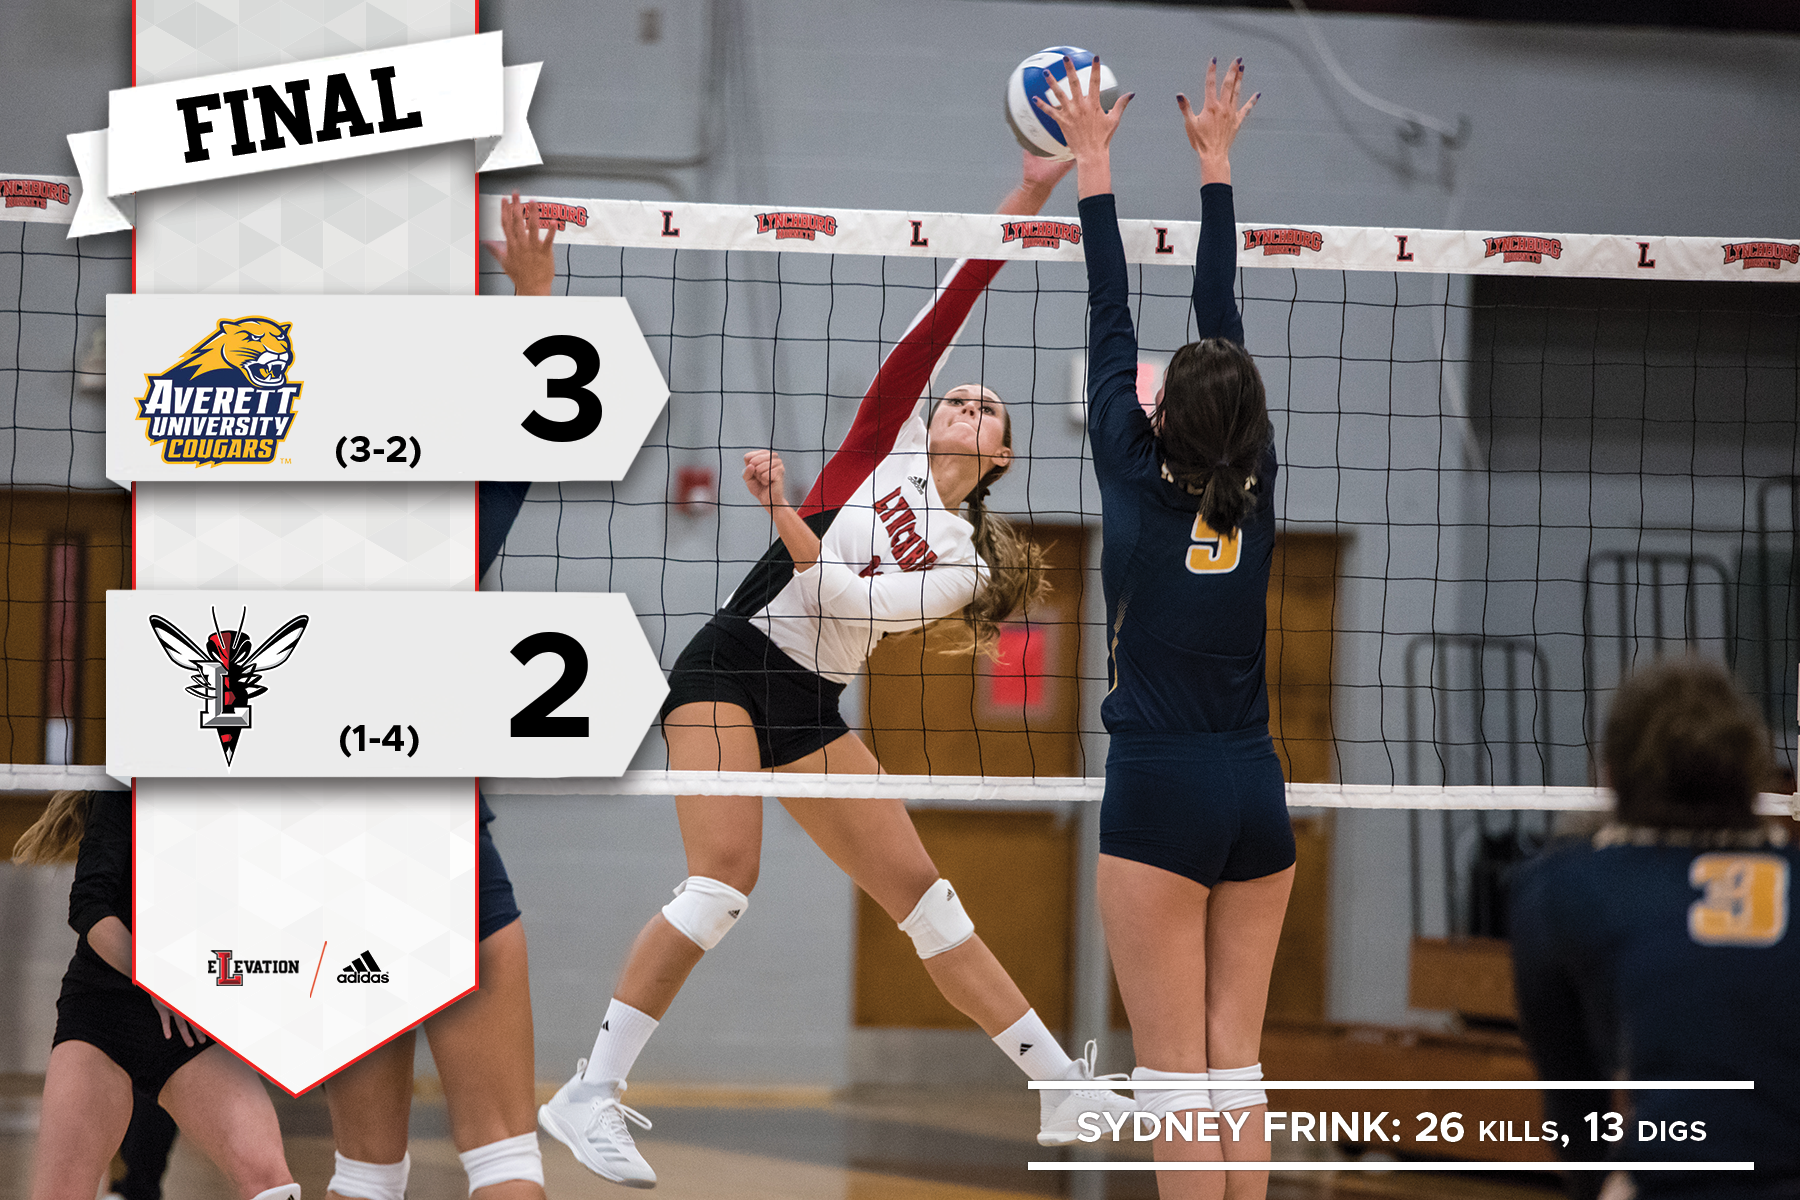 Sydney Frink swings at a volleyball in a game. Graphic showling 3-2 final score and Lynchburg/Averett logos.